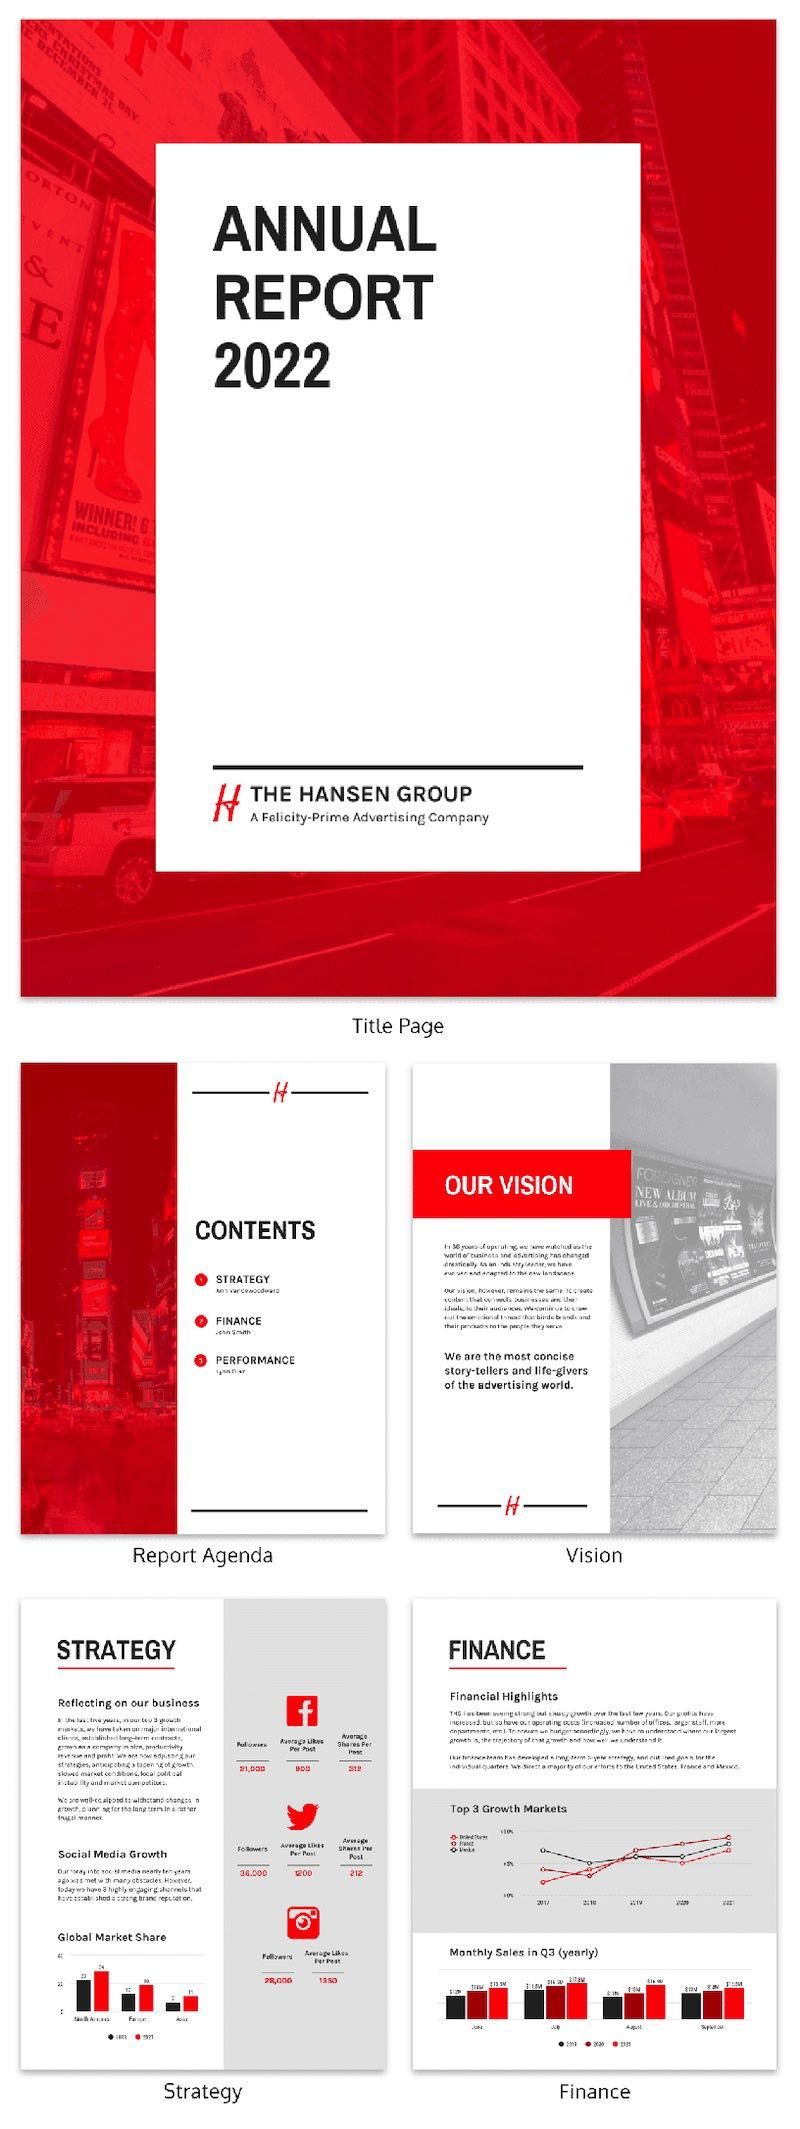 009 Amazing Annual Report Design Template High Def  Templates Word Timeles Free Download InFull